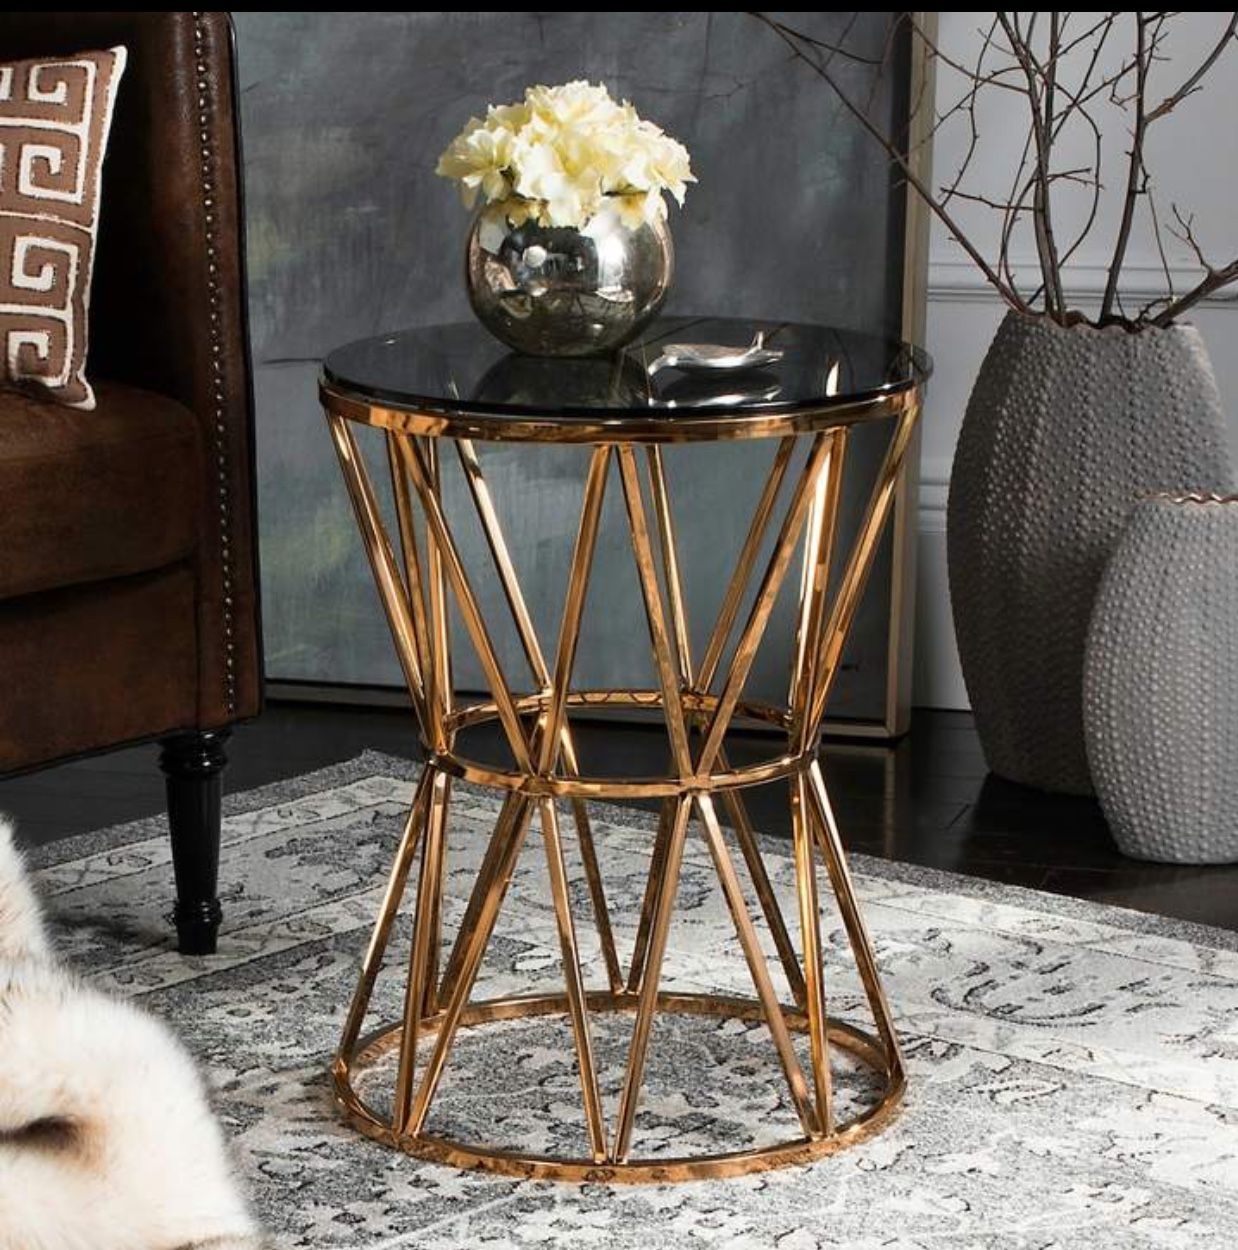 geometric coffee table living room decoration ideas safavieh decorative accent tables livingroom patterned lamp shades signy drum with marble top hallway drawers custom legs